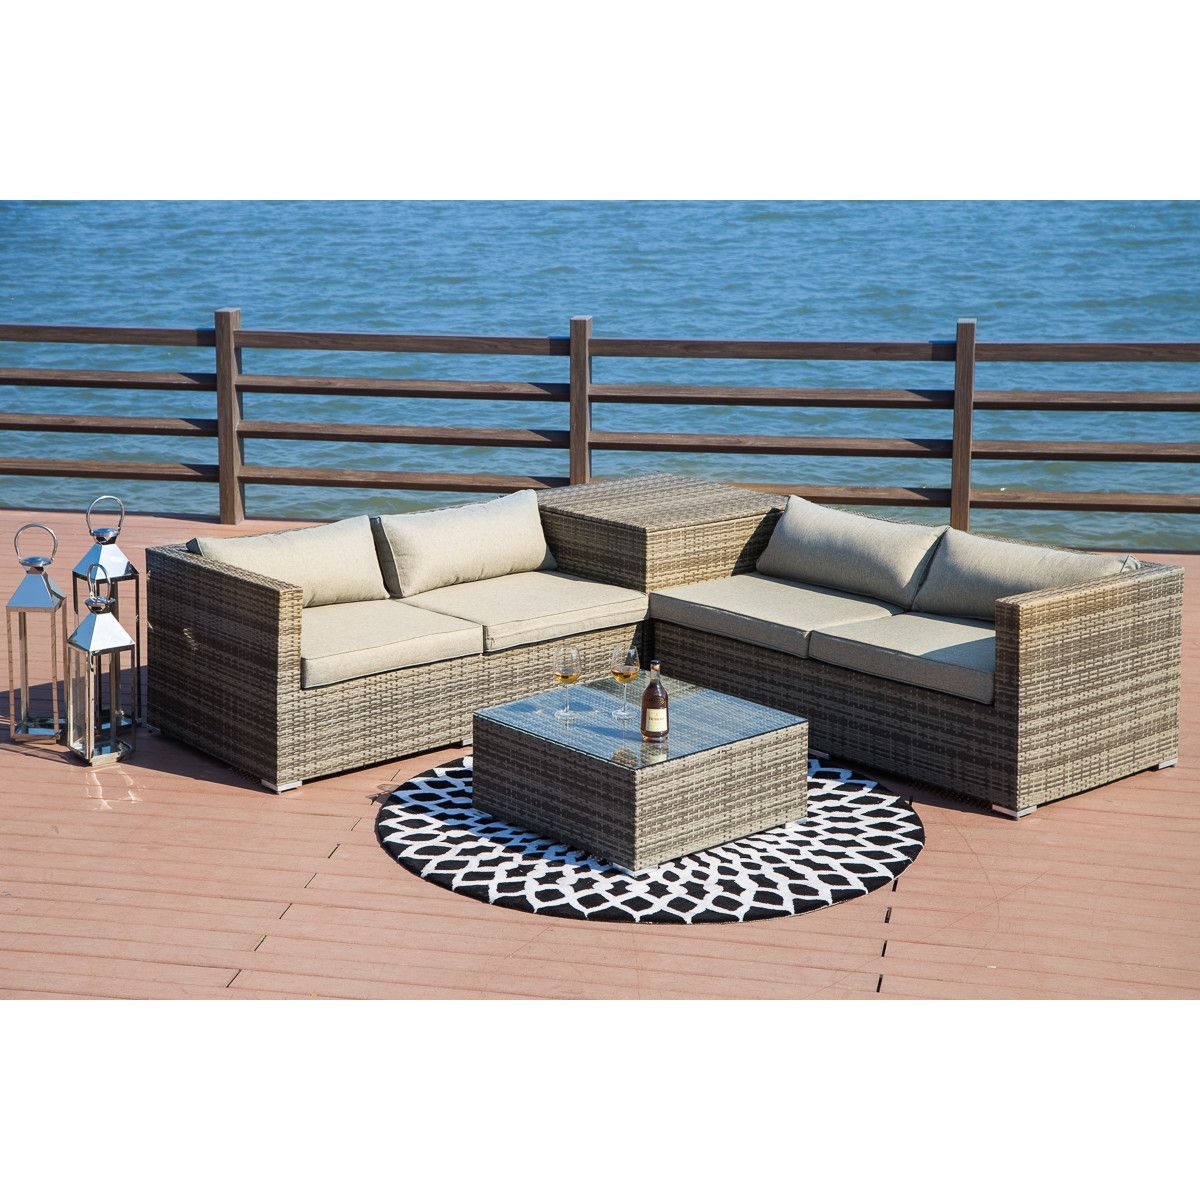 Vankirk 4 Piece Sectional Seating Group With Cushions Seating Groups Sofa Set Outdoor Deck Furniture